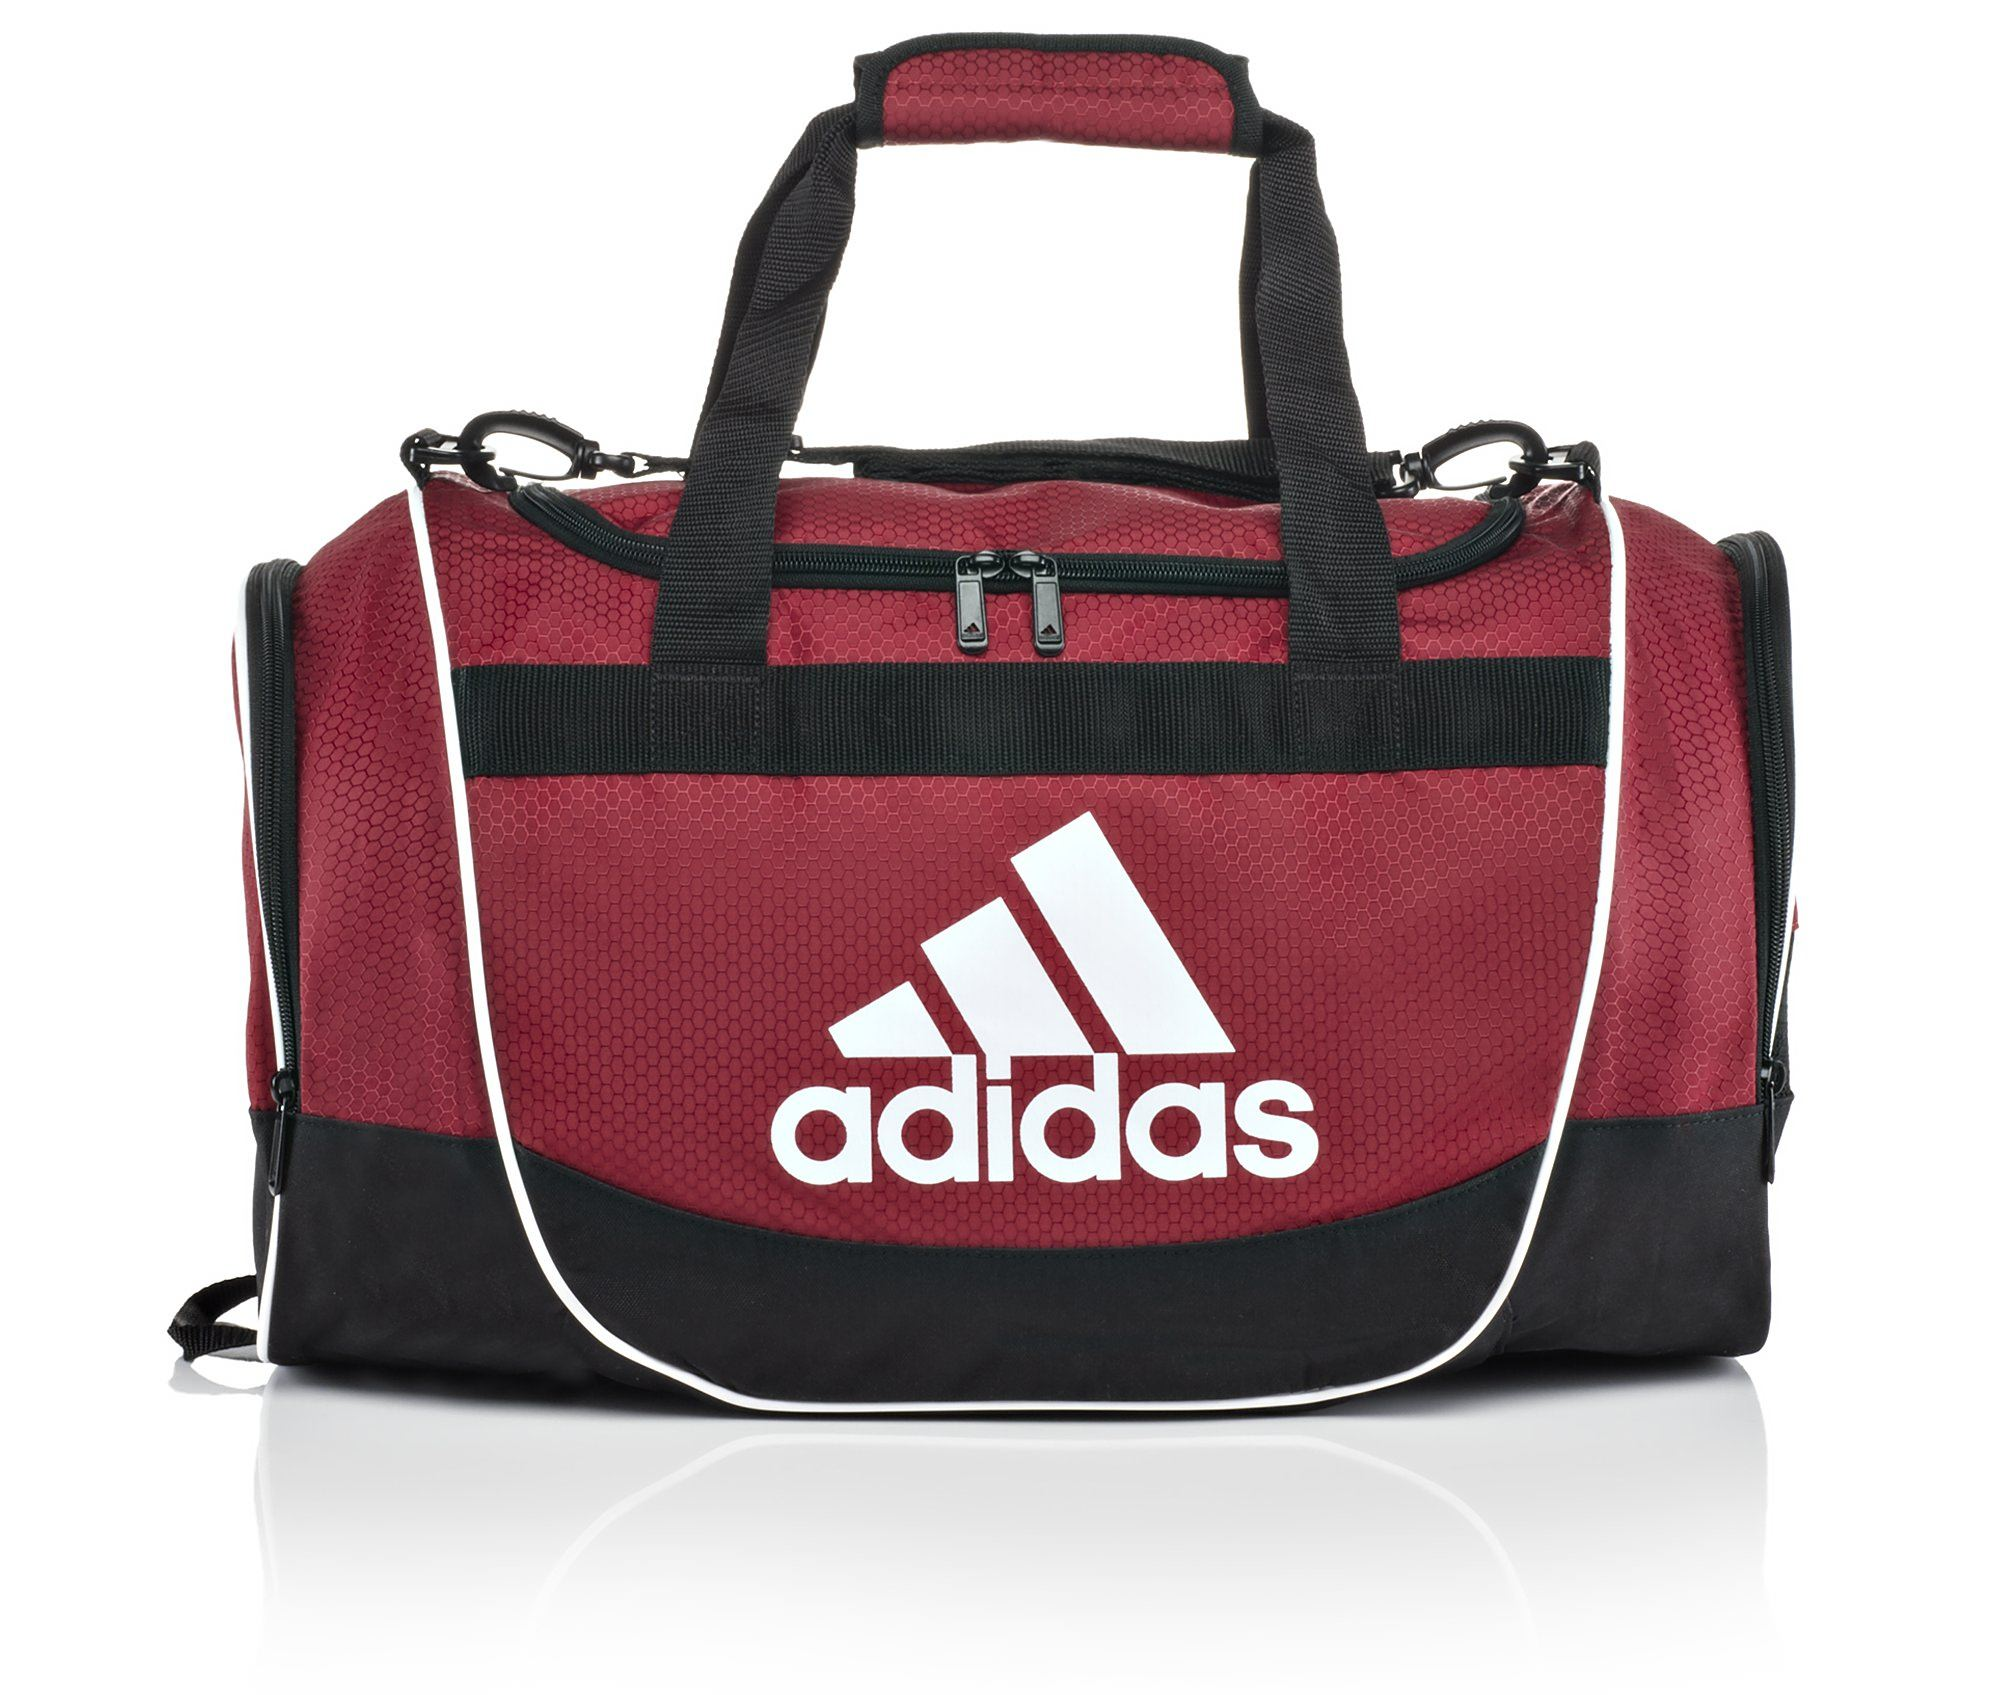 Image of Adidas Defender Small Duffel Bag (Red - Size UNSZ)